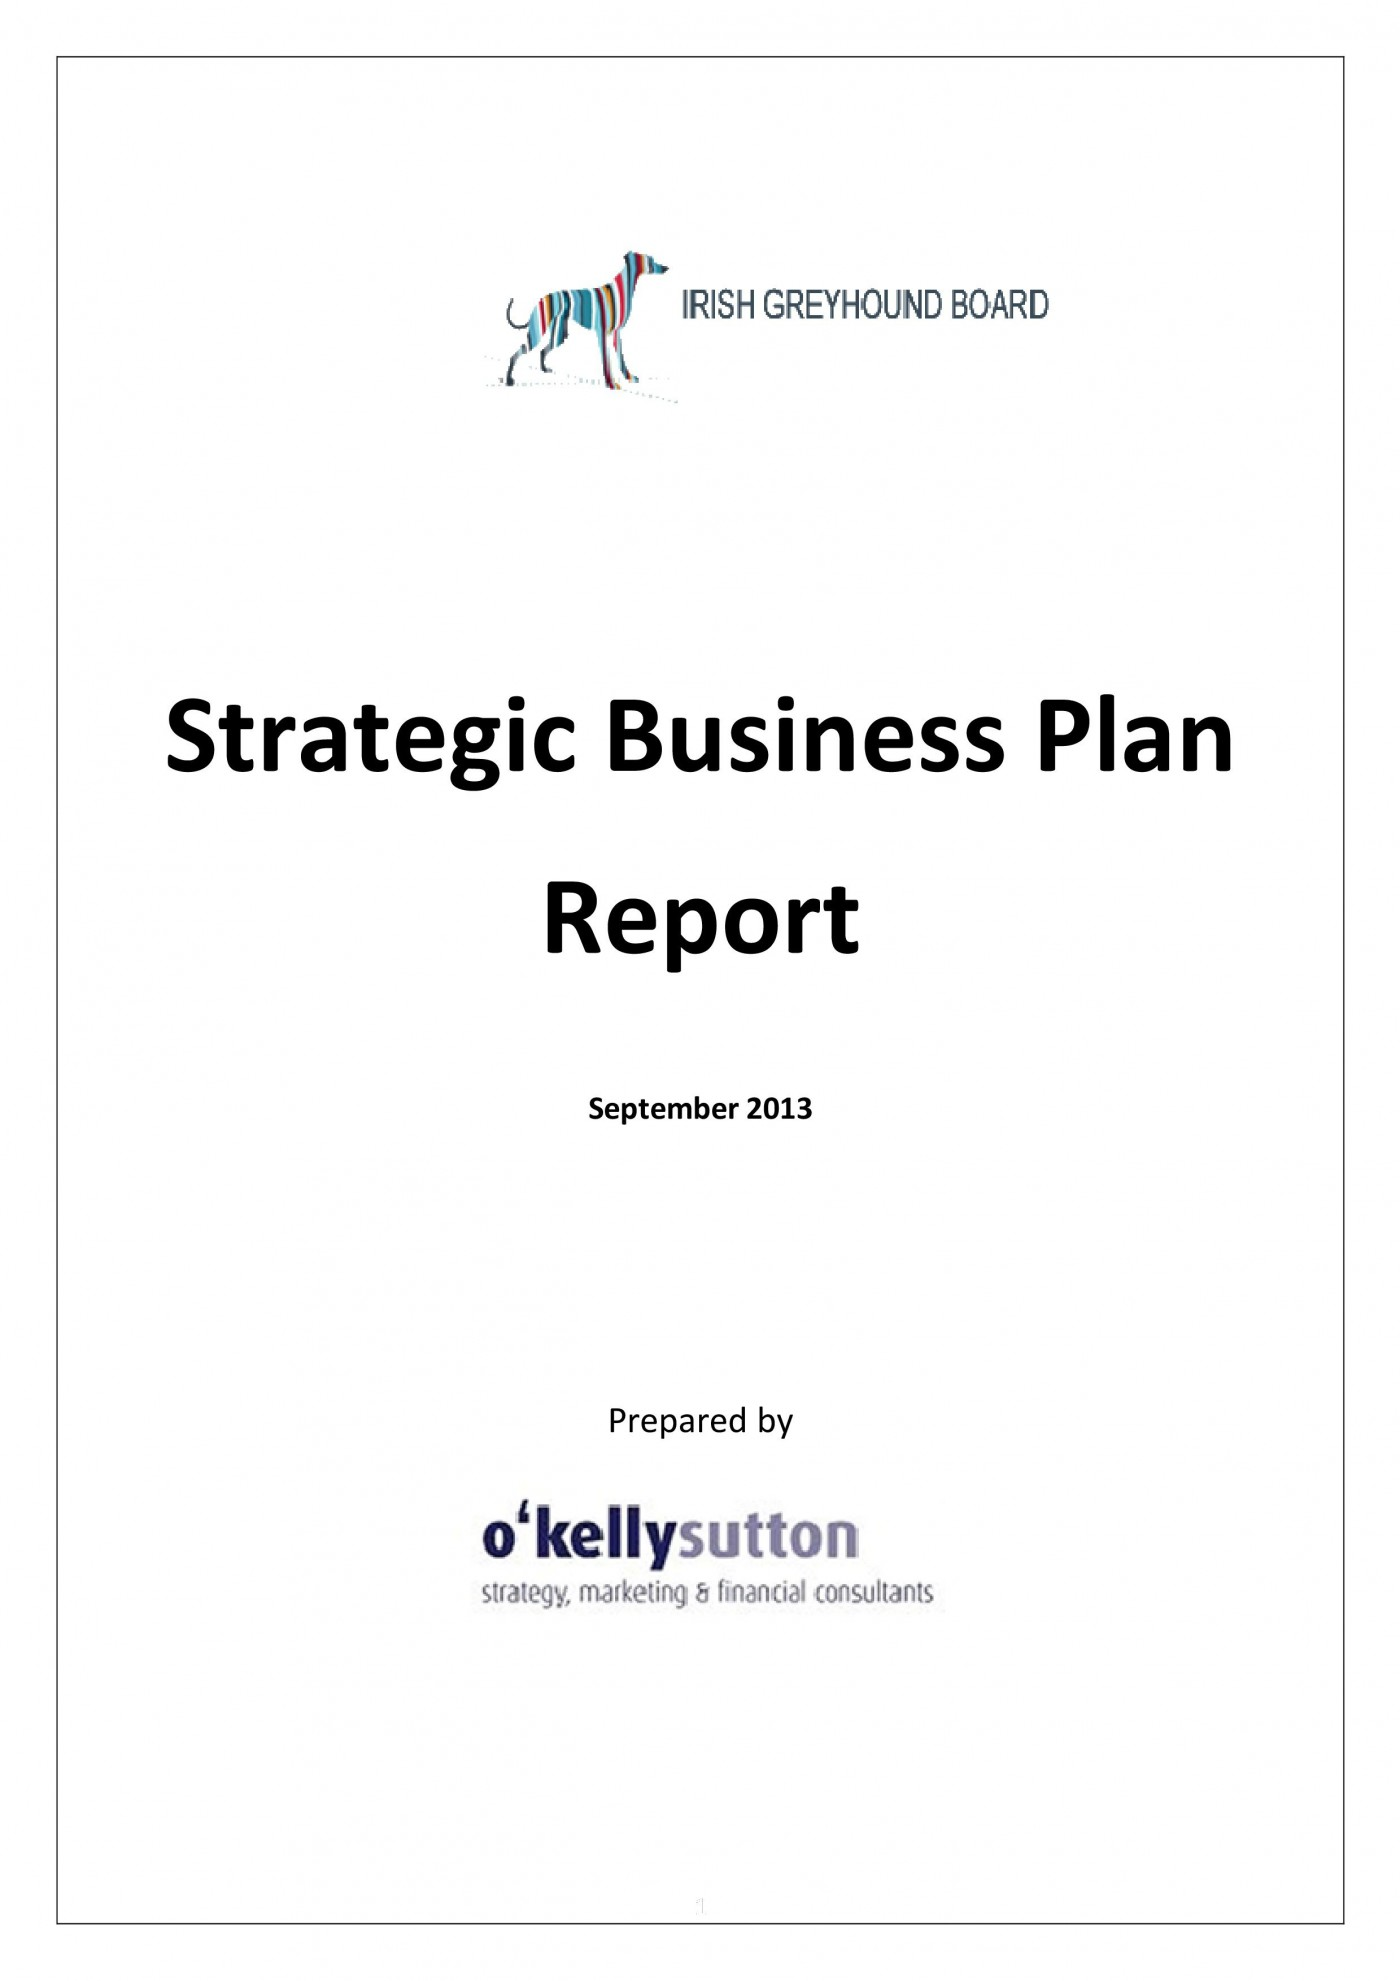 003 Awesome Strategic Busines Plan Template Highest Quality  Development Word Sample1400